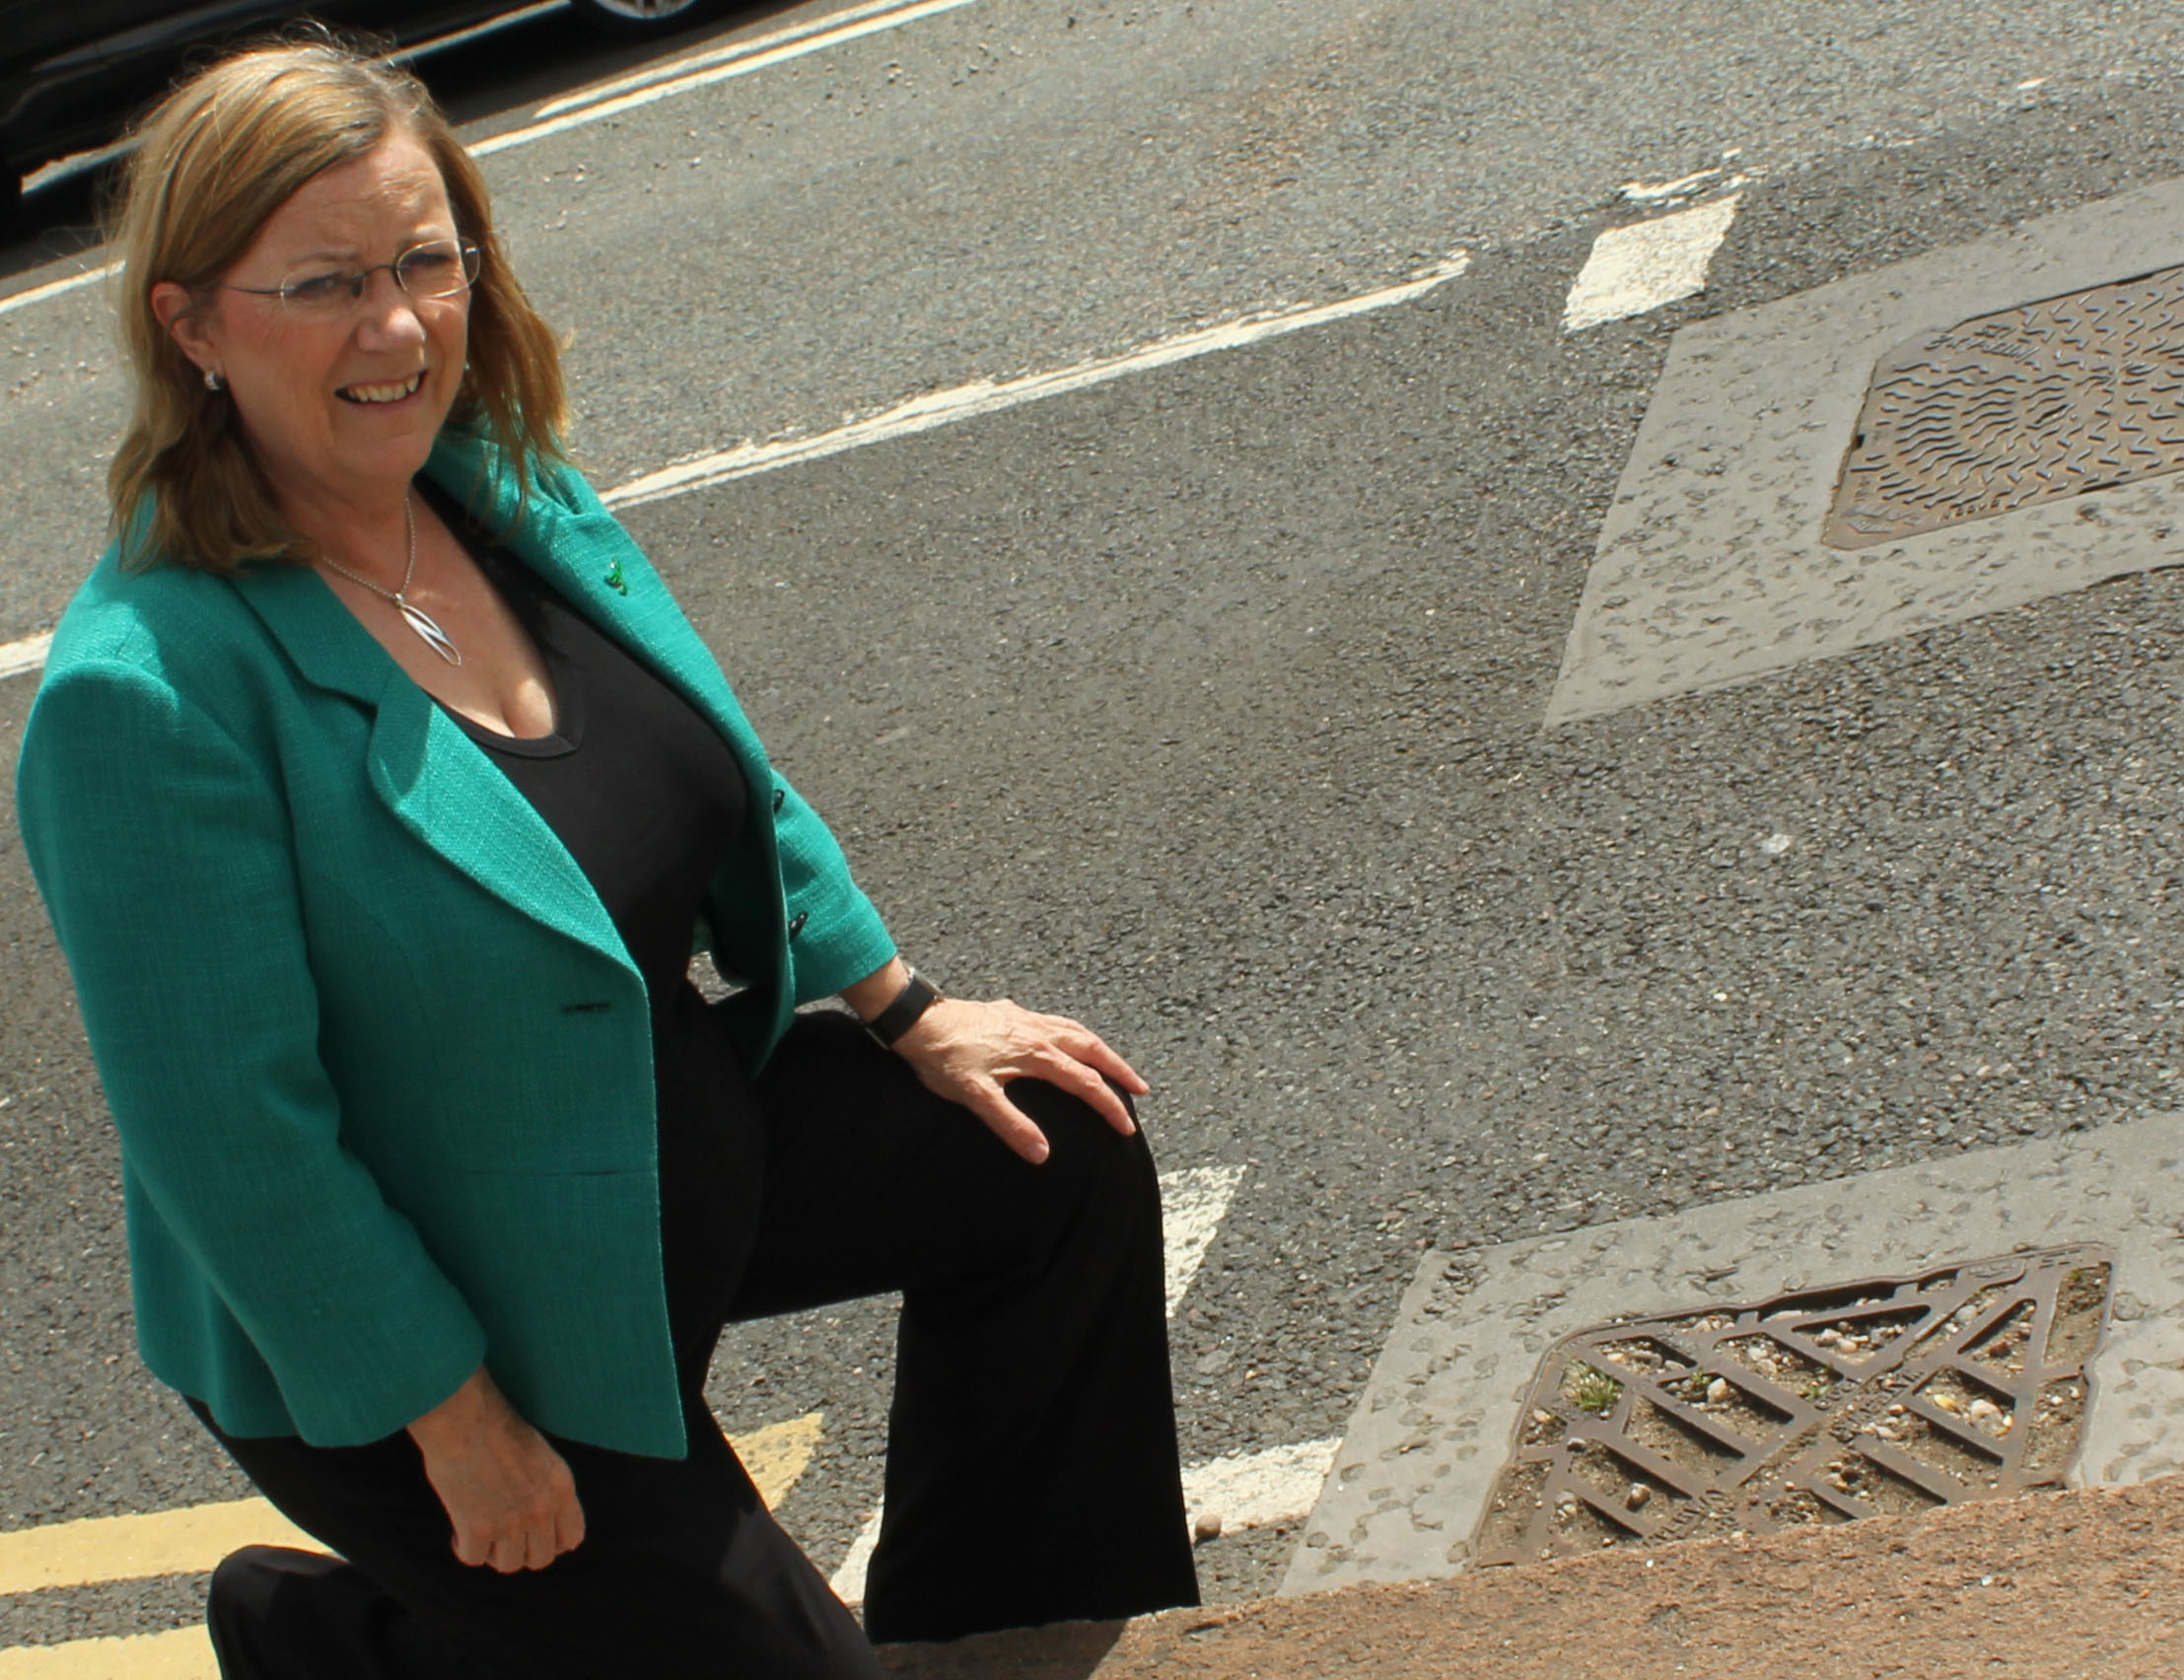 County Cllr Jill Hope at a blocked drain in St James Road on Sunday, 28 July